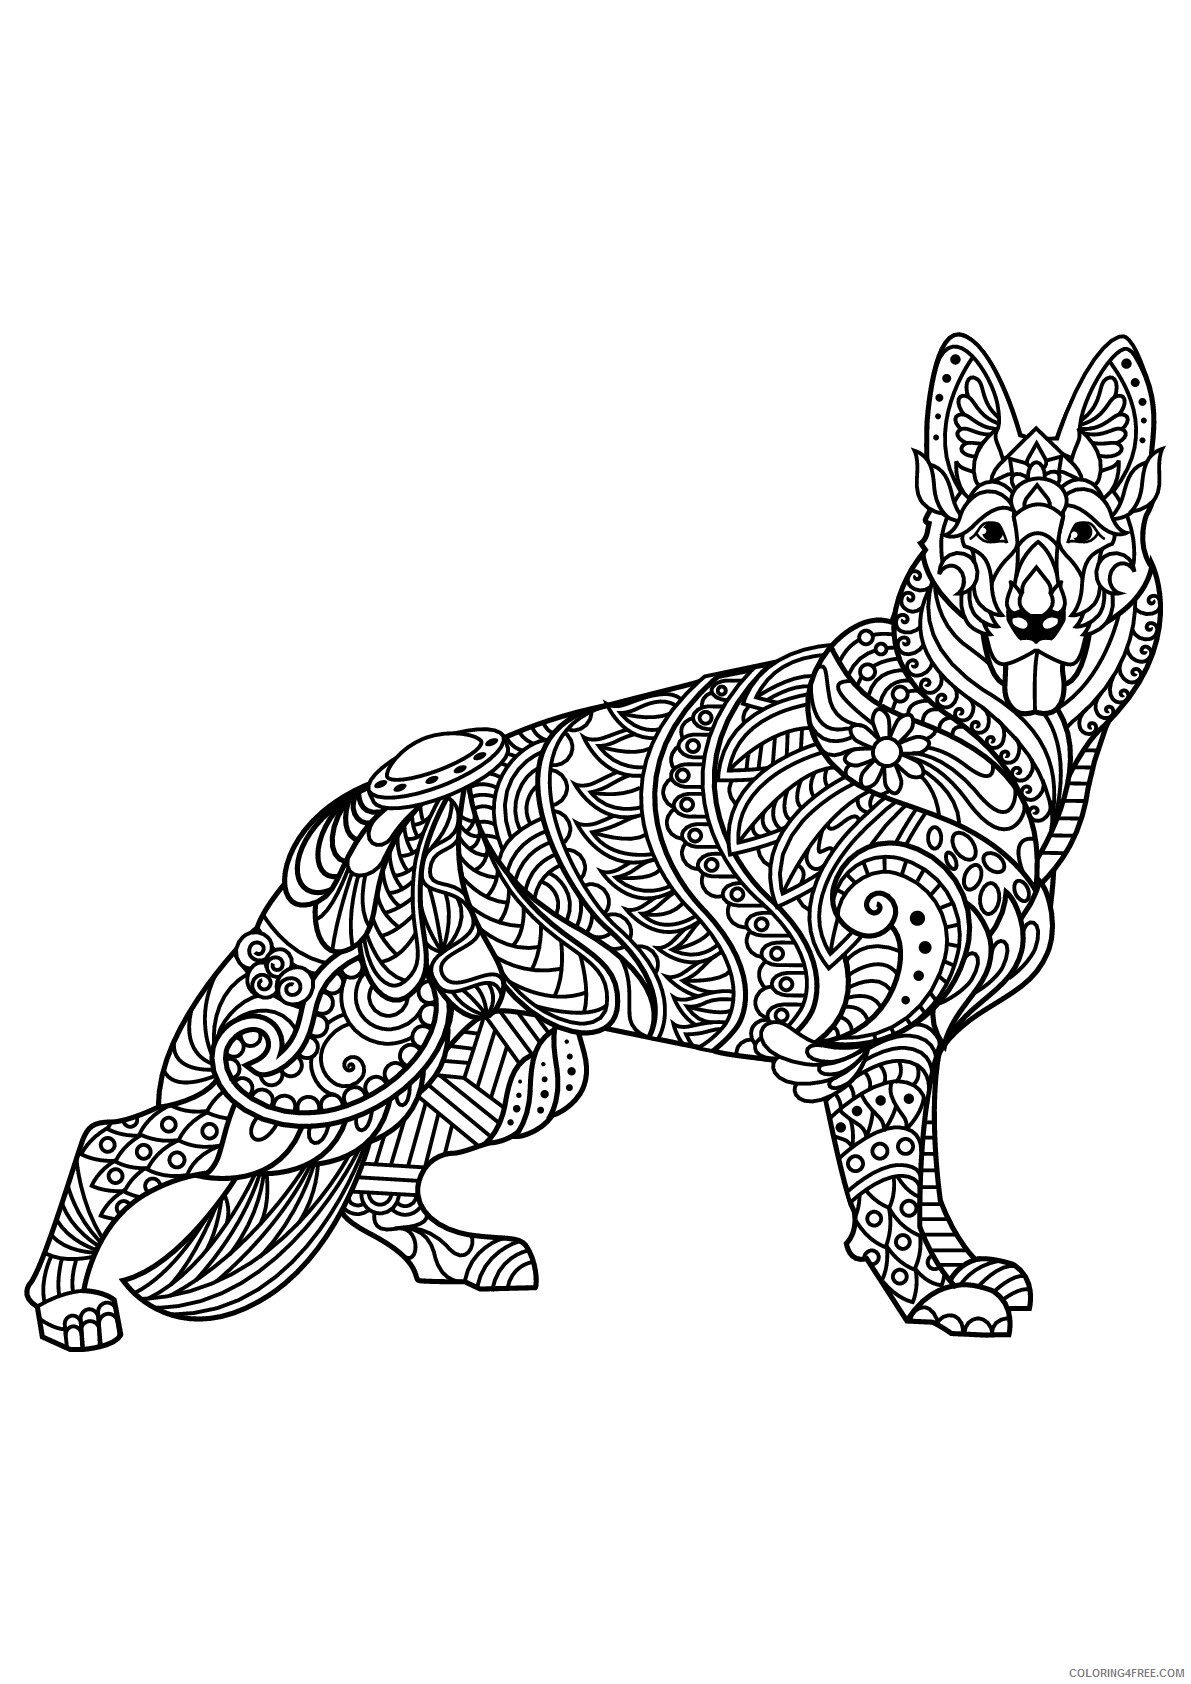 Adult Animals Coloring Pages German Shepherd for Adults Printable 2020 156 Coloring4free